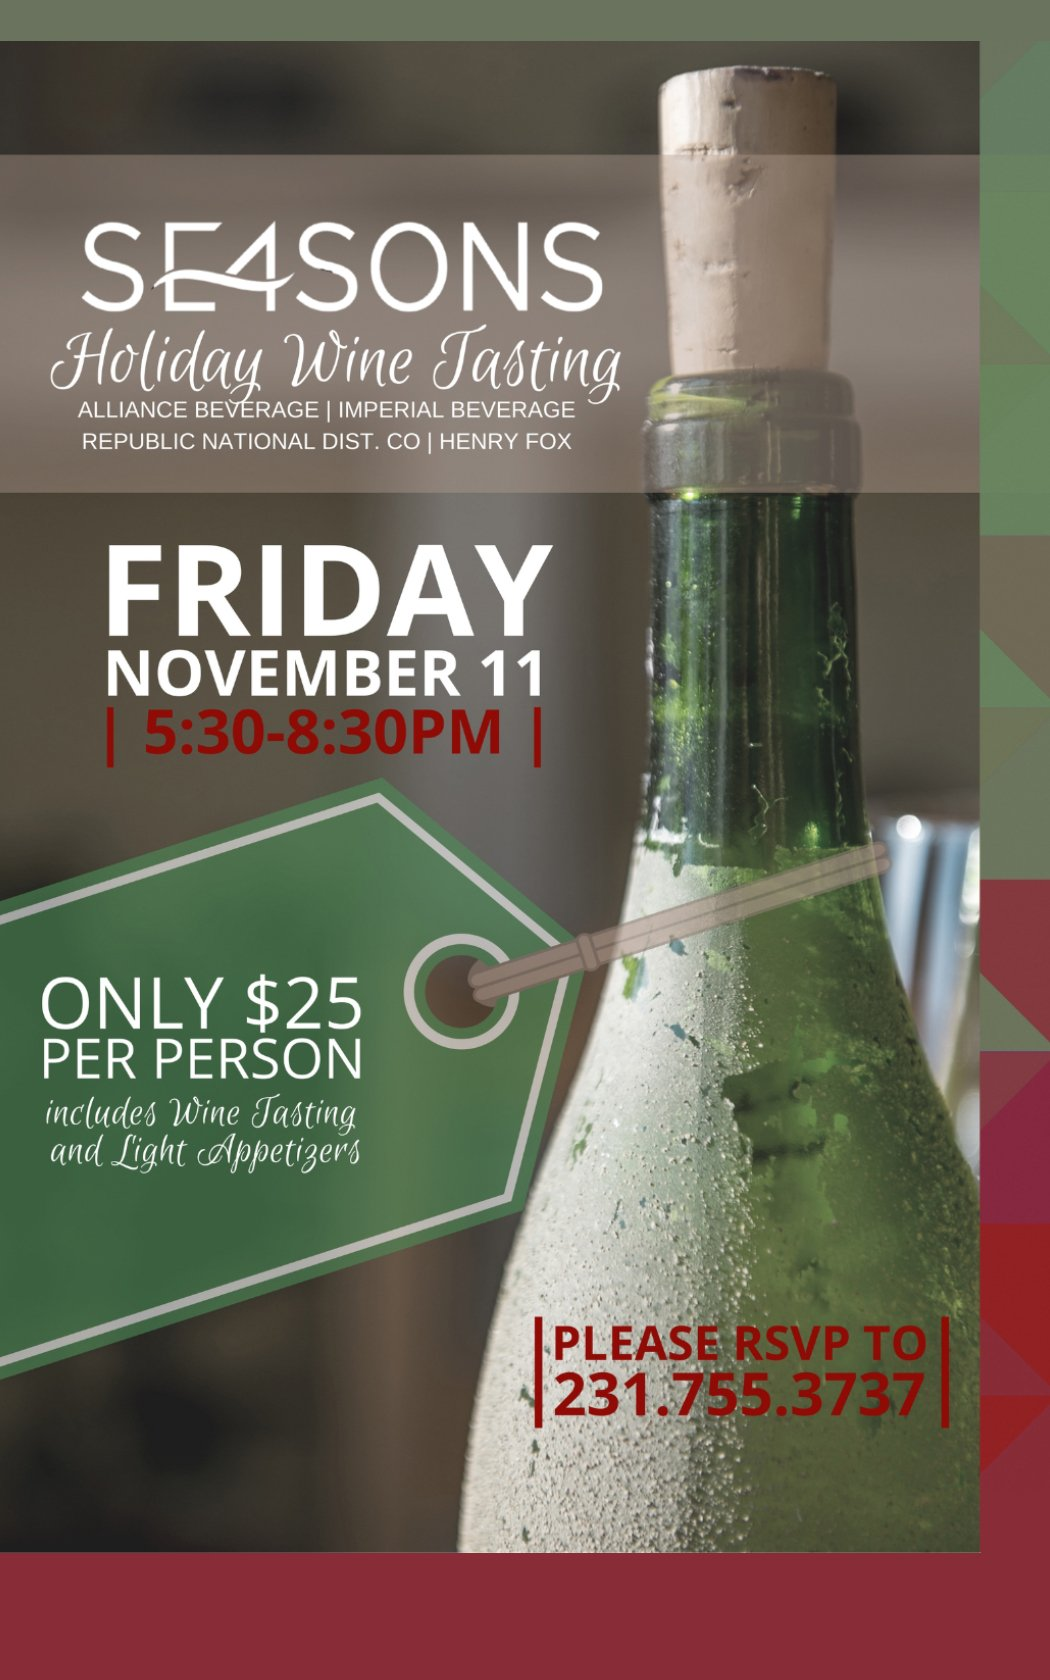 Nov 11 – Holiday Wine Tasting at SE4SONS